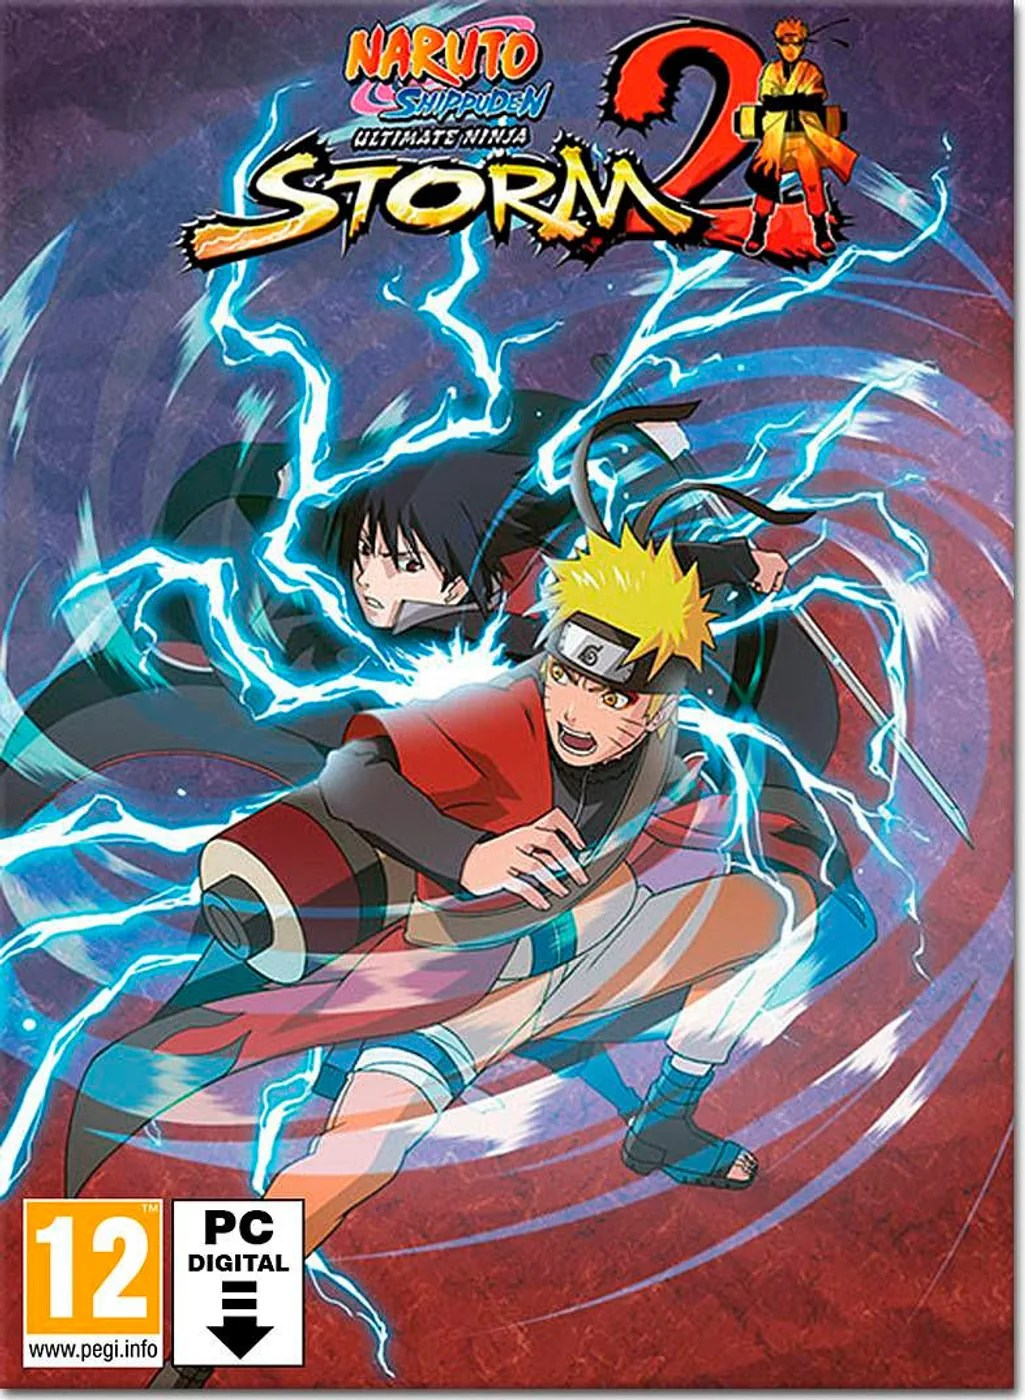 Pc Naruto Shippuden Ultimate Ninja Storm 2 D F I Download Esd Migros